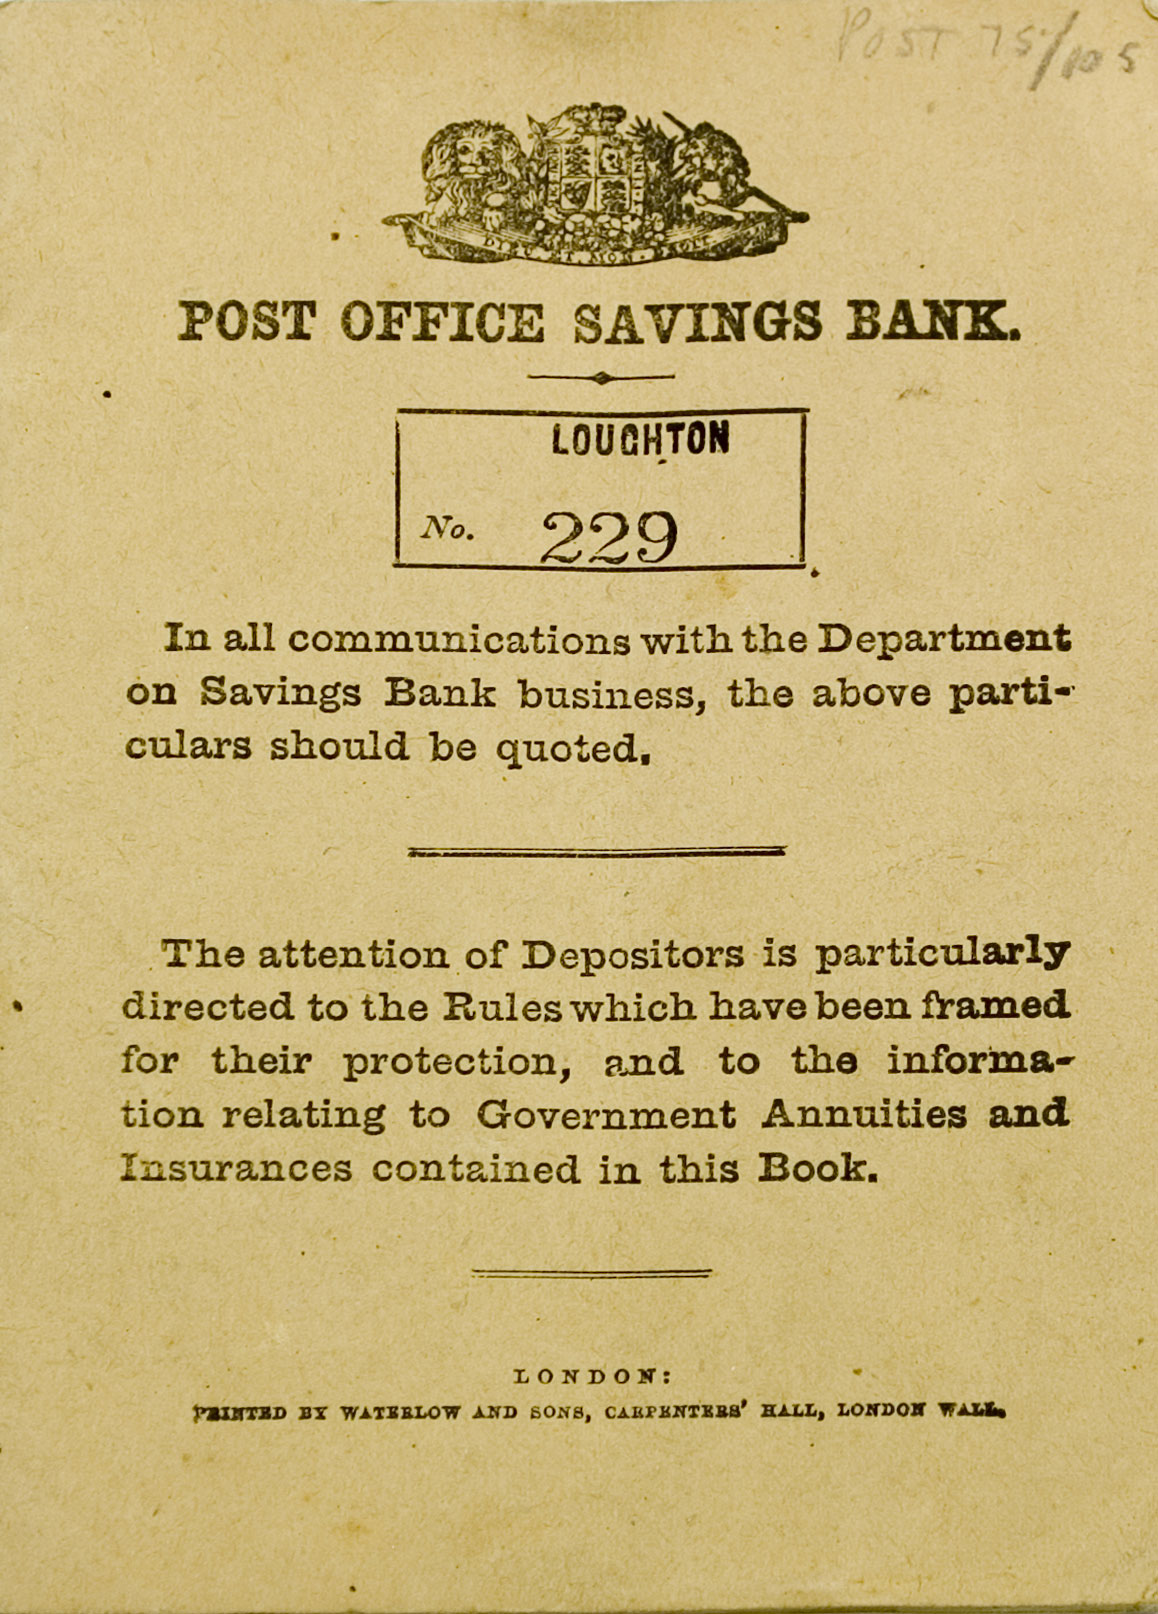 bank deposits posted